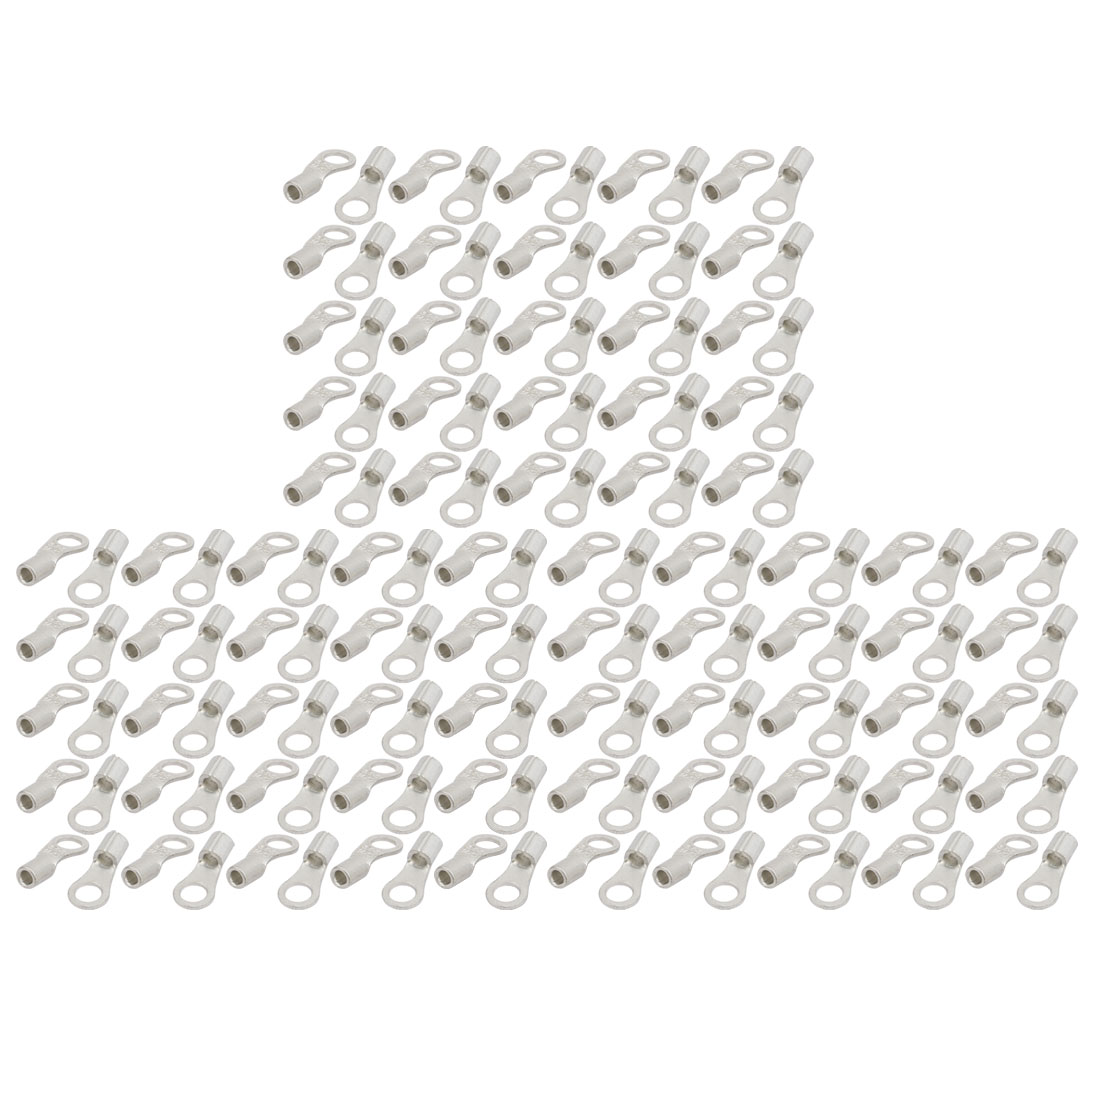 150pcs Awg14 12 Round Rnb3 5 5 Non Insulated Spade Wire